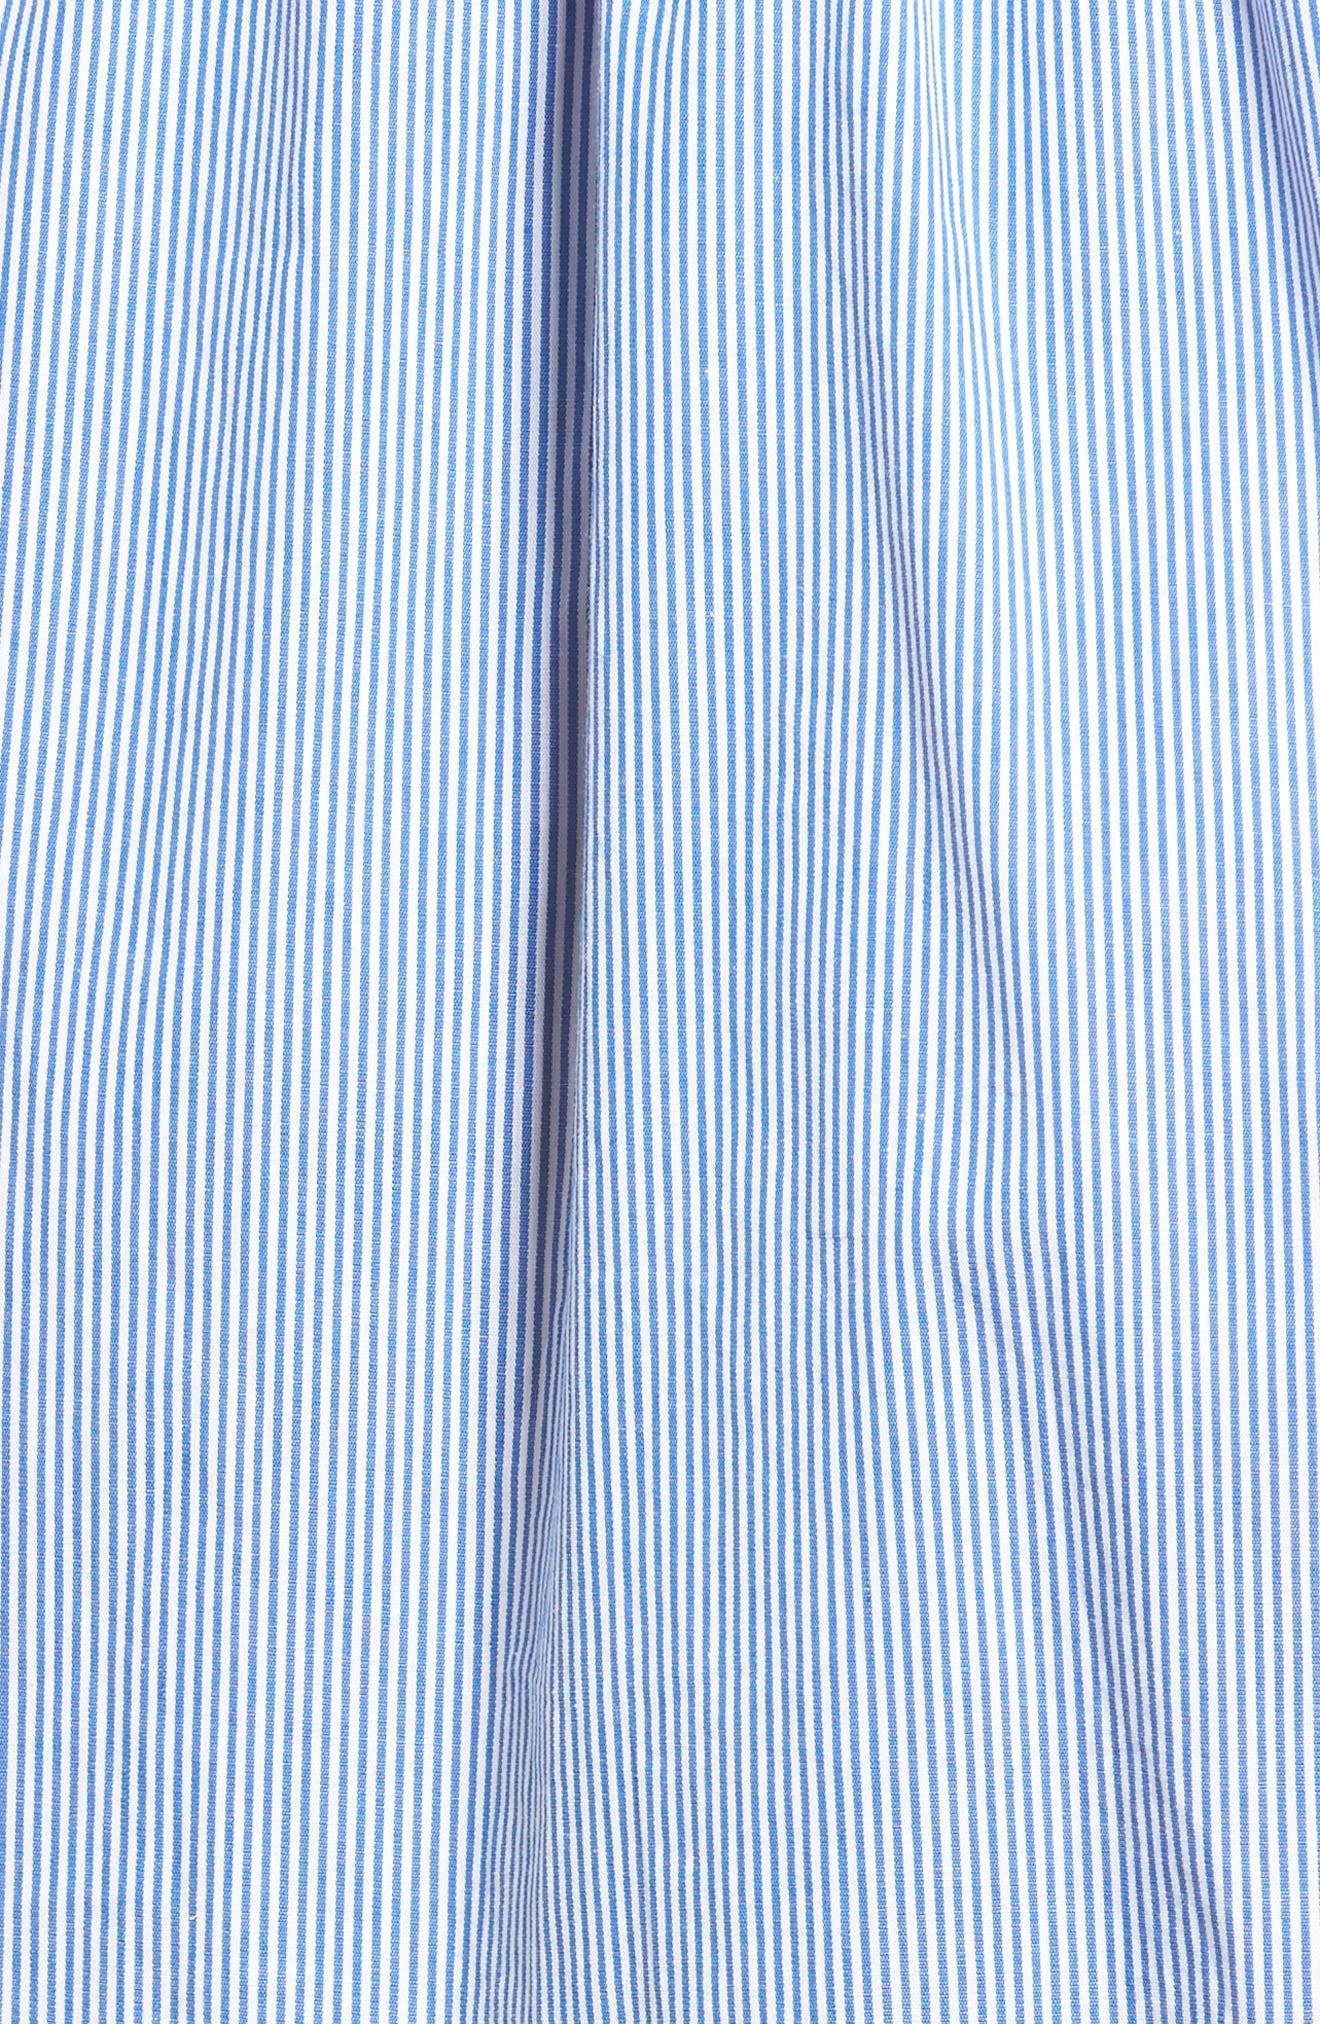 Stripe Wrap Dress,                             Alternate thumbnail 5, color,                             Blue Stripe